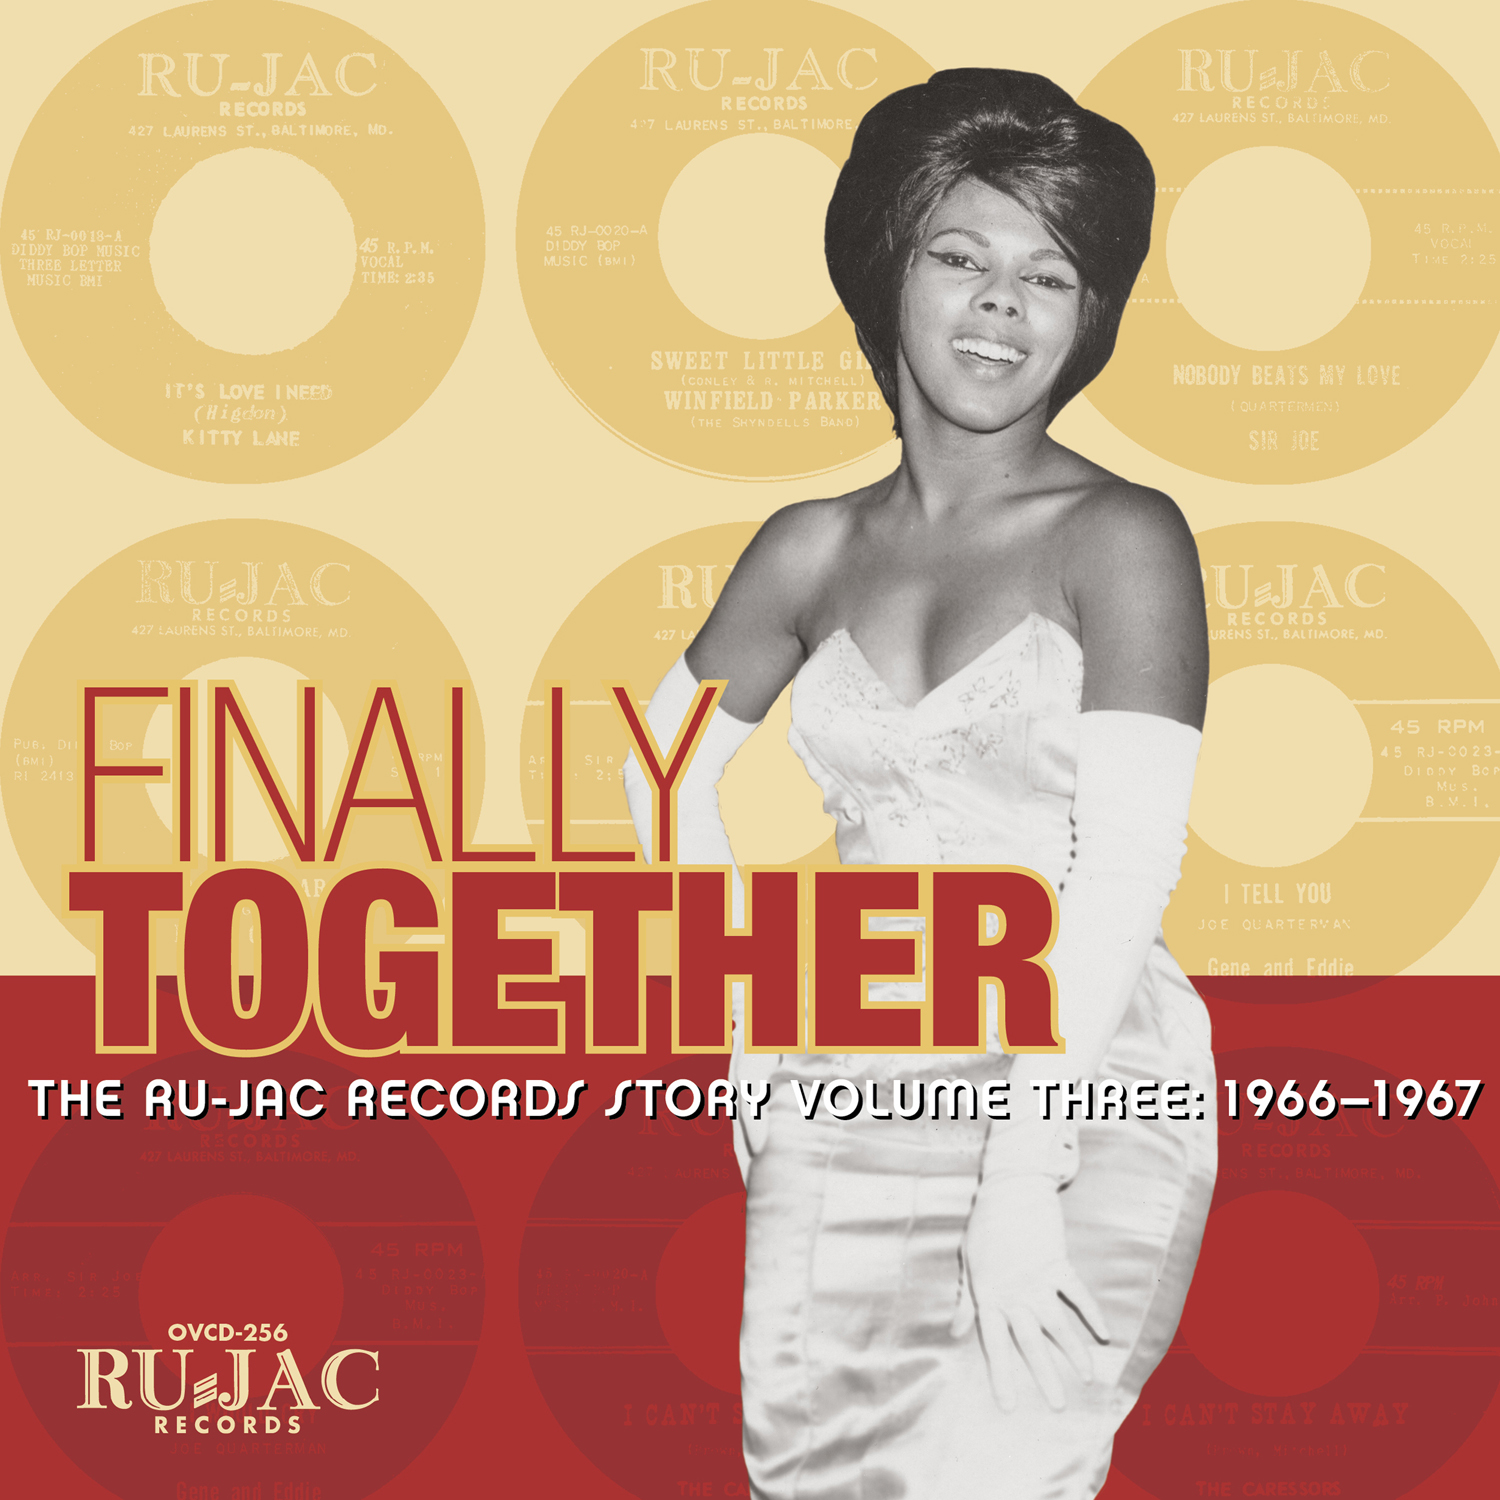 Various Artists -Finally Together: The Ru-Jac Records Story Volume Three: 1966–1967  Release Date: February, 2018 Label: Omnivore Recordings  SERVICE: Restoration, Mastering NUMBER OF DISCS: 1 GENRE: Soul FORMAT: CD